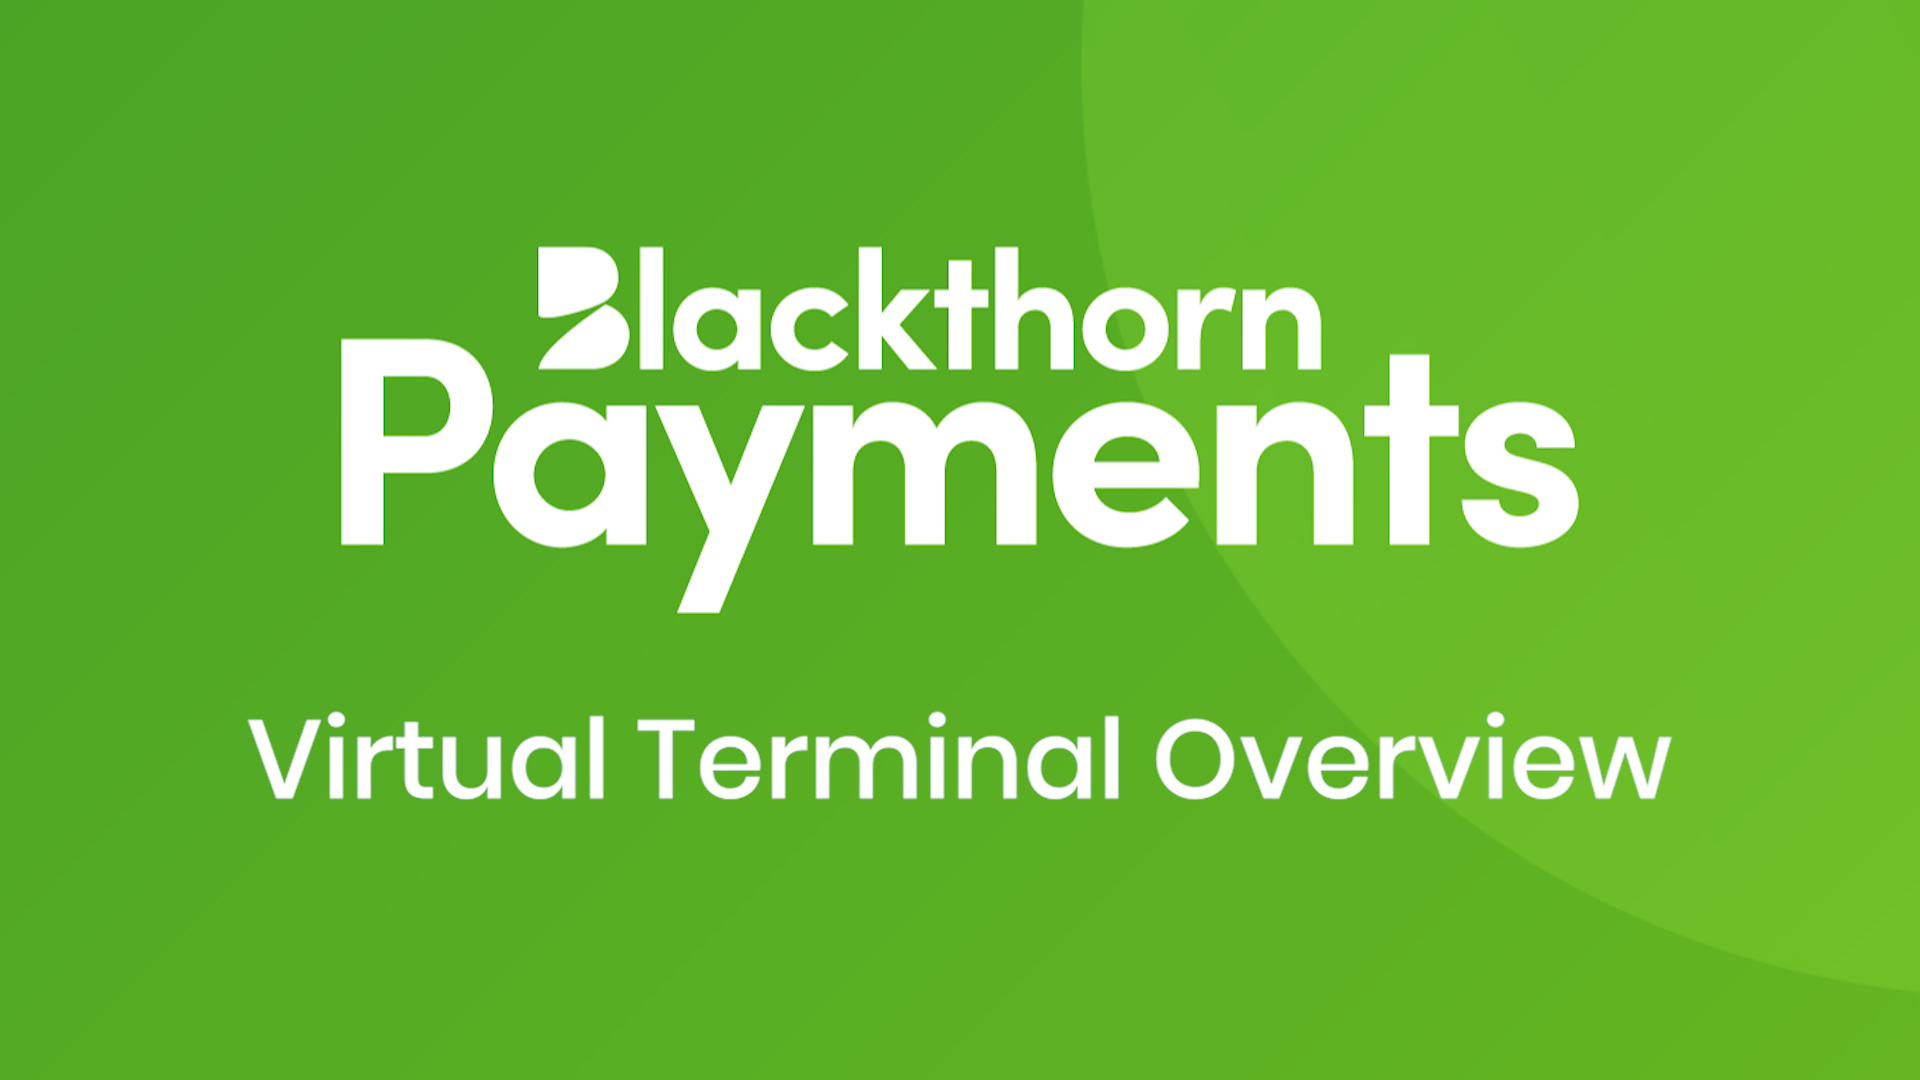 Process payments with the Virtual Terminal